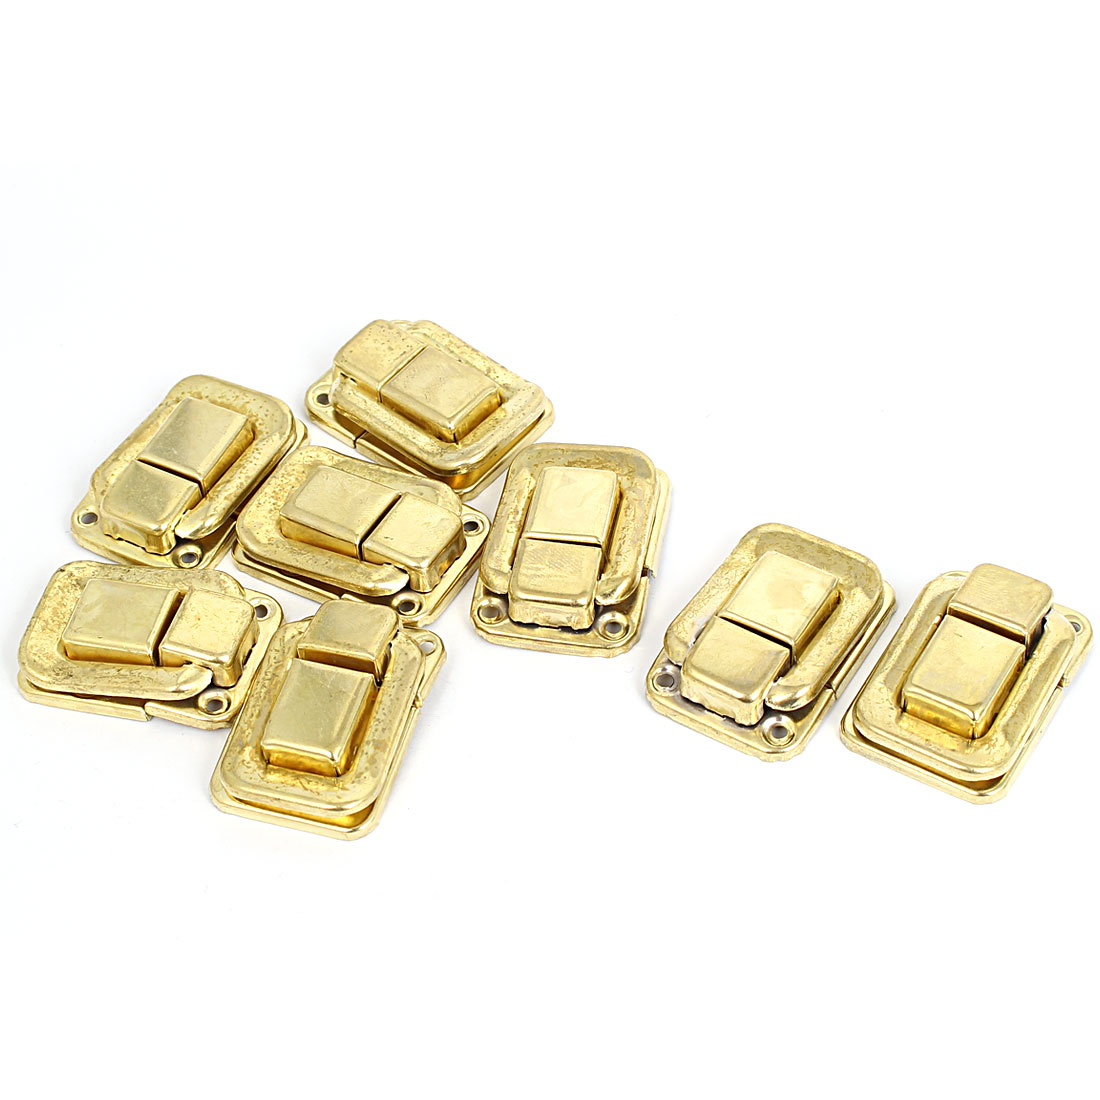 Drawer Case Fittings Hardware Toggle Latch Hasp Gold Tone 36mm Length 8pcs